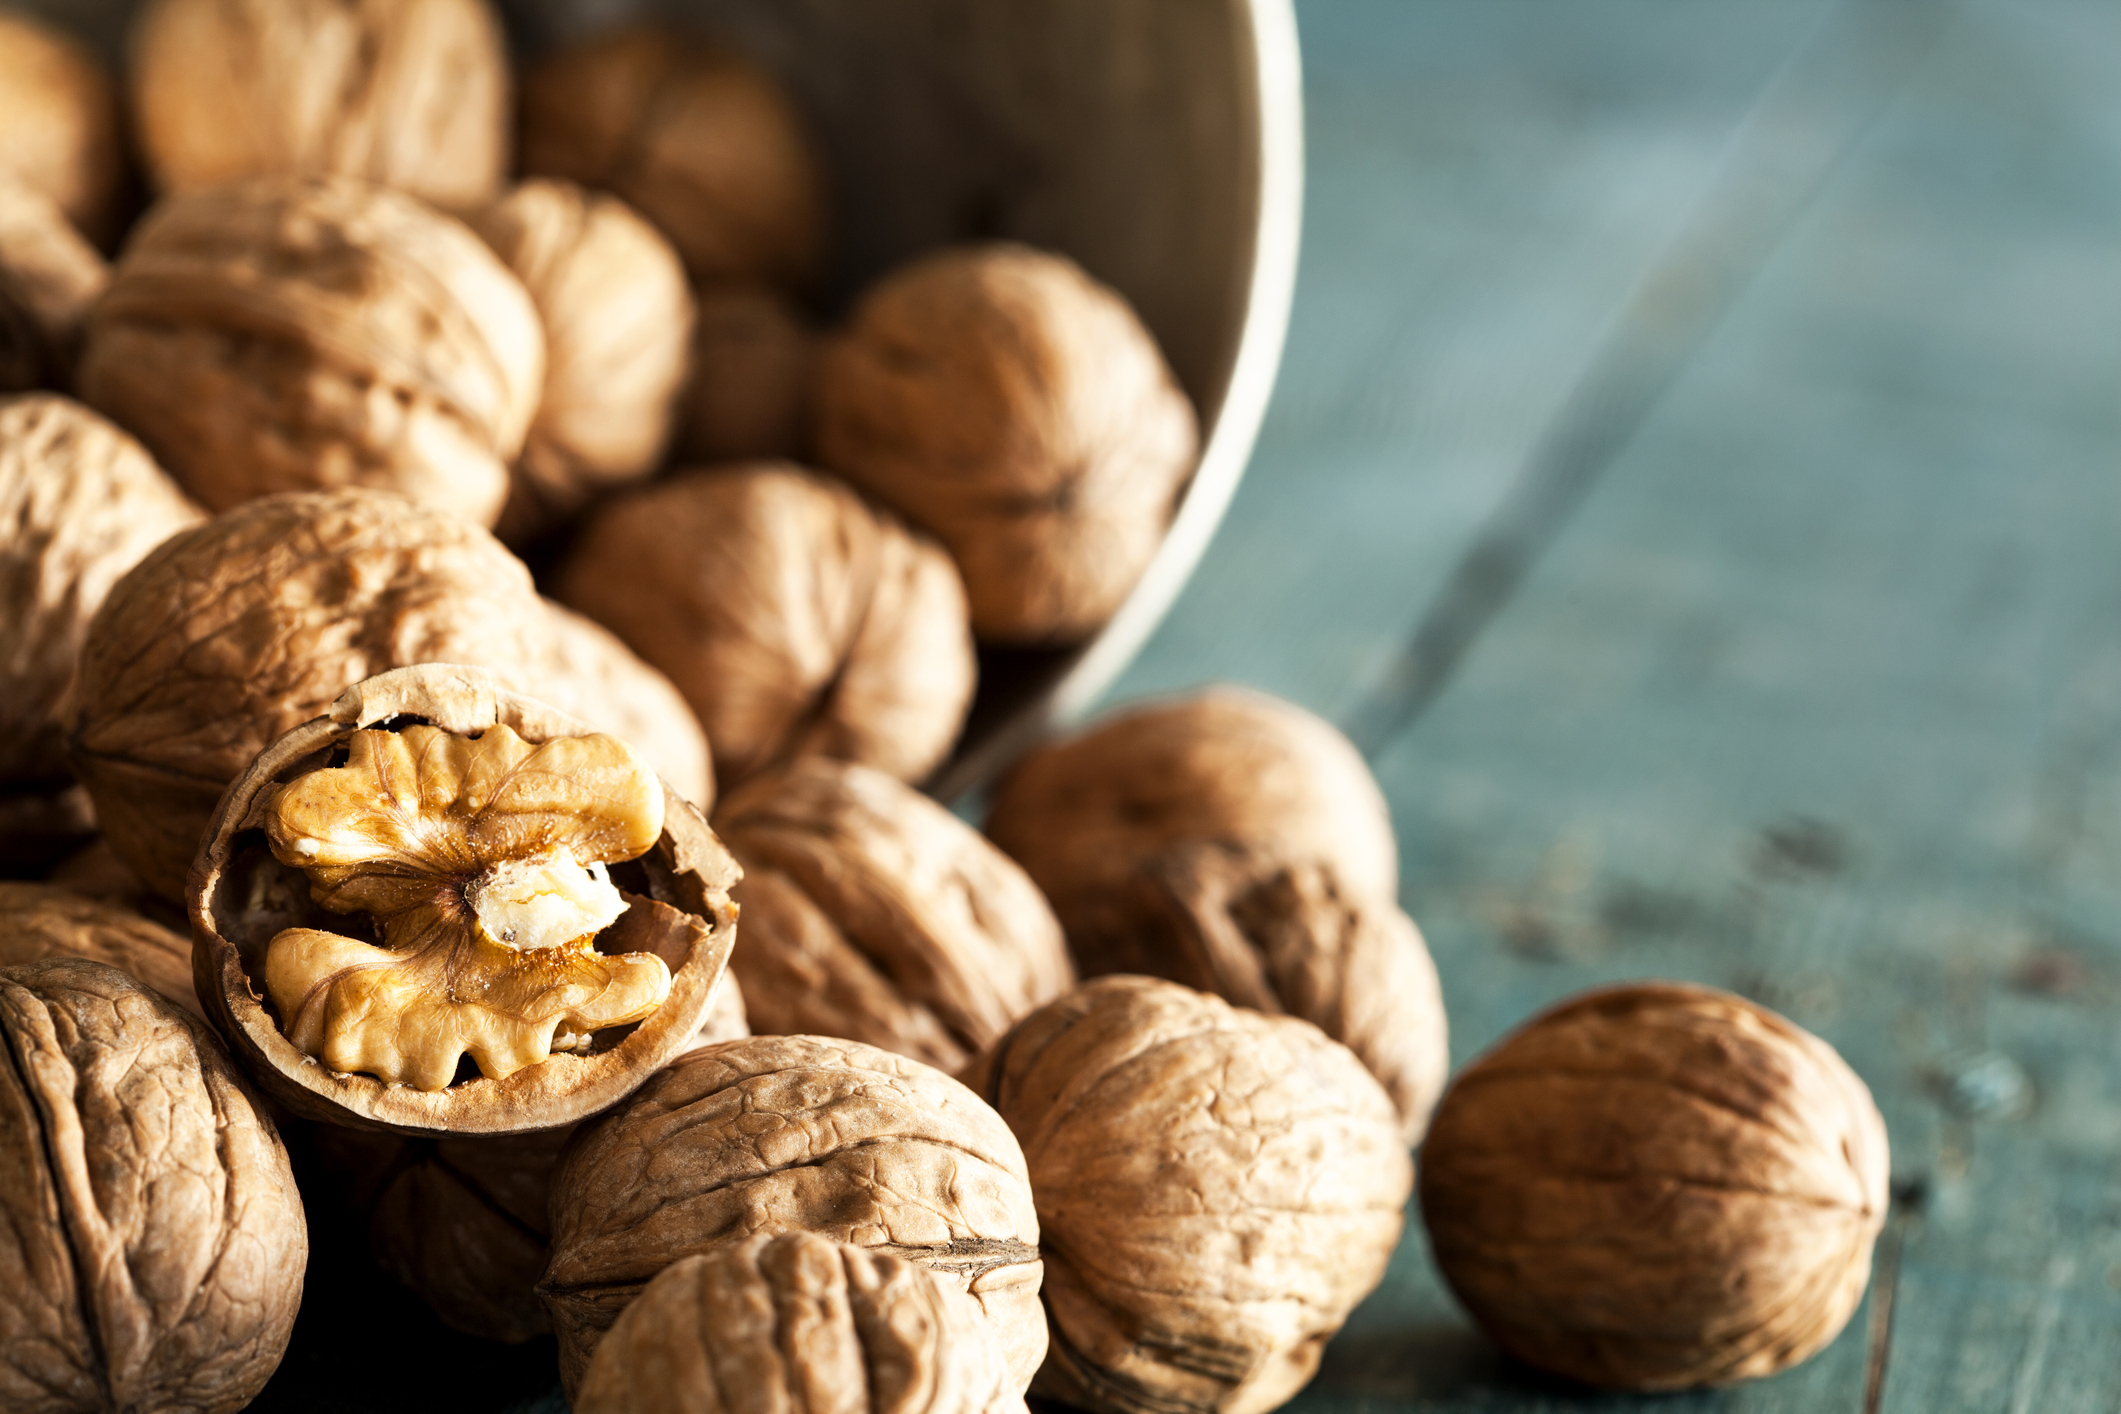 Health benefits of walnuts - Harvard Health Blog - Harvard